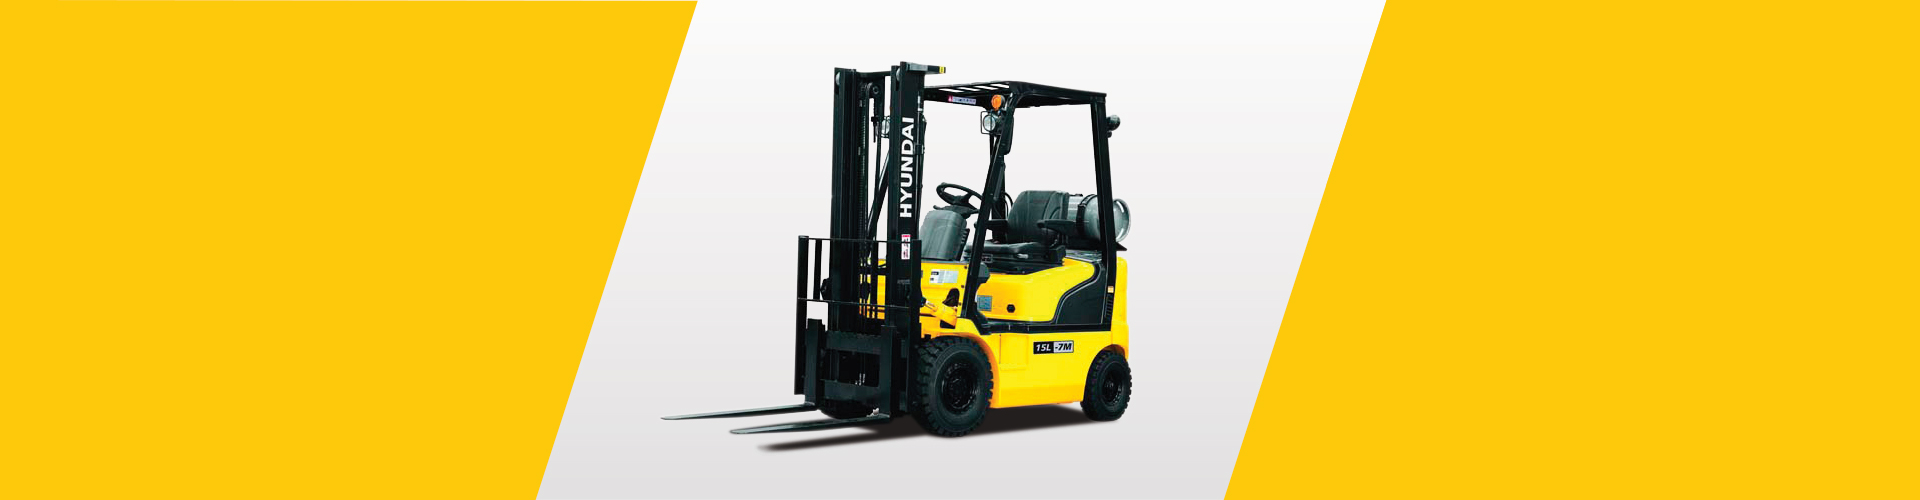 In Forklift Hire